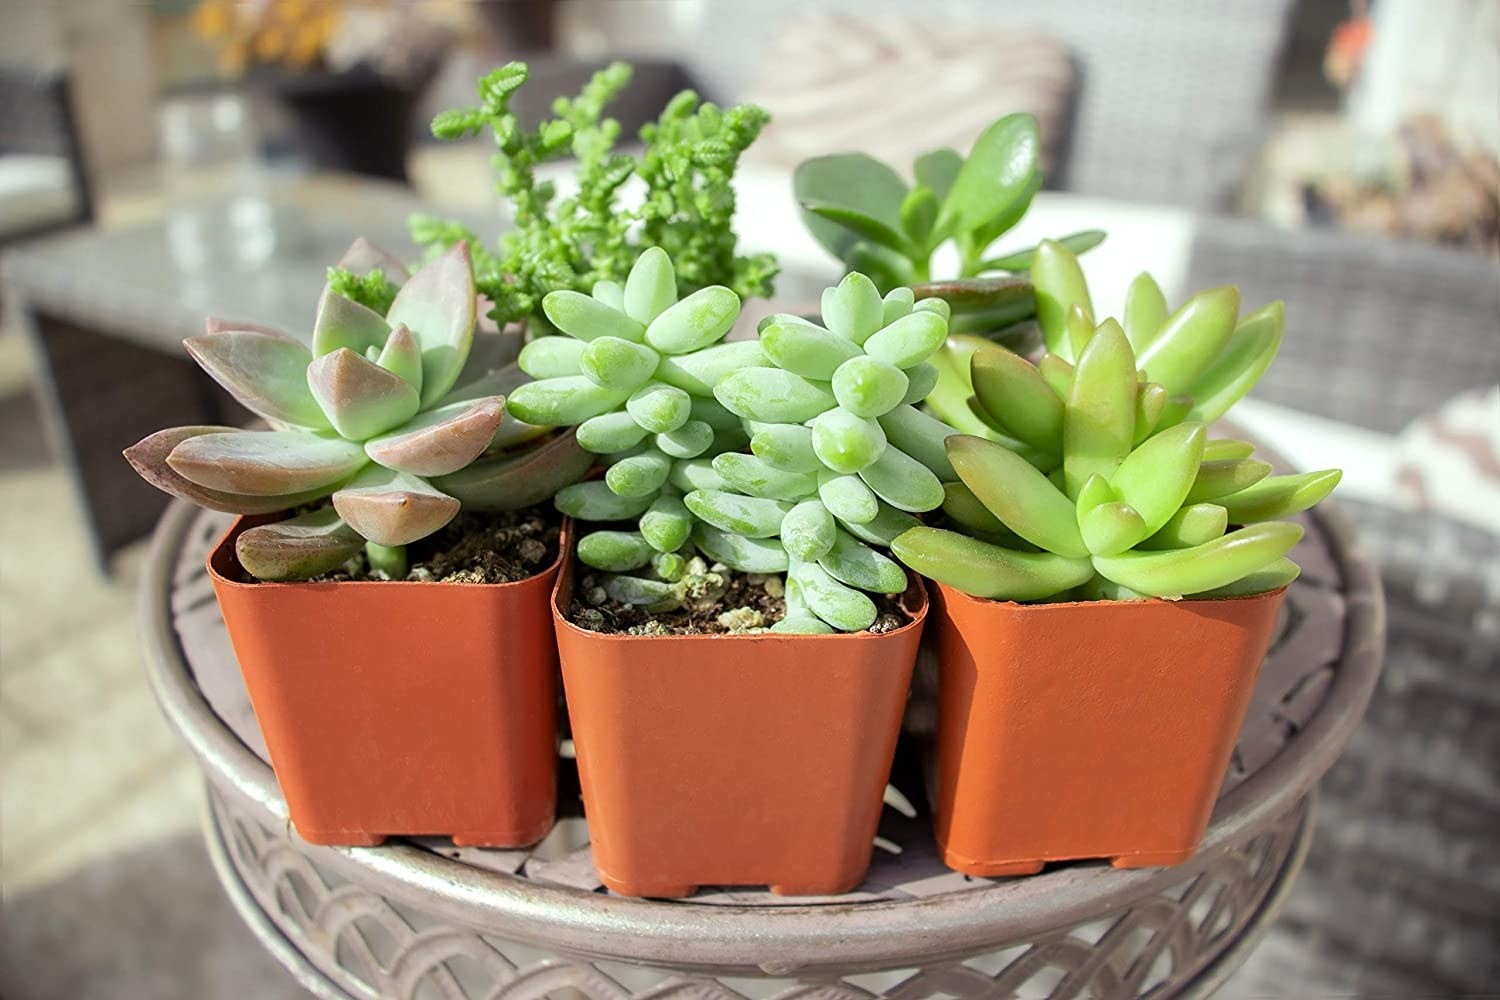 the five succulent plants that come in the set